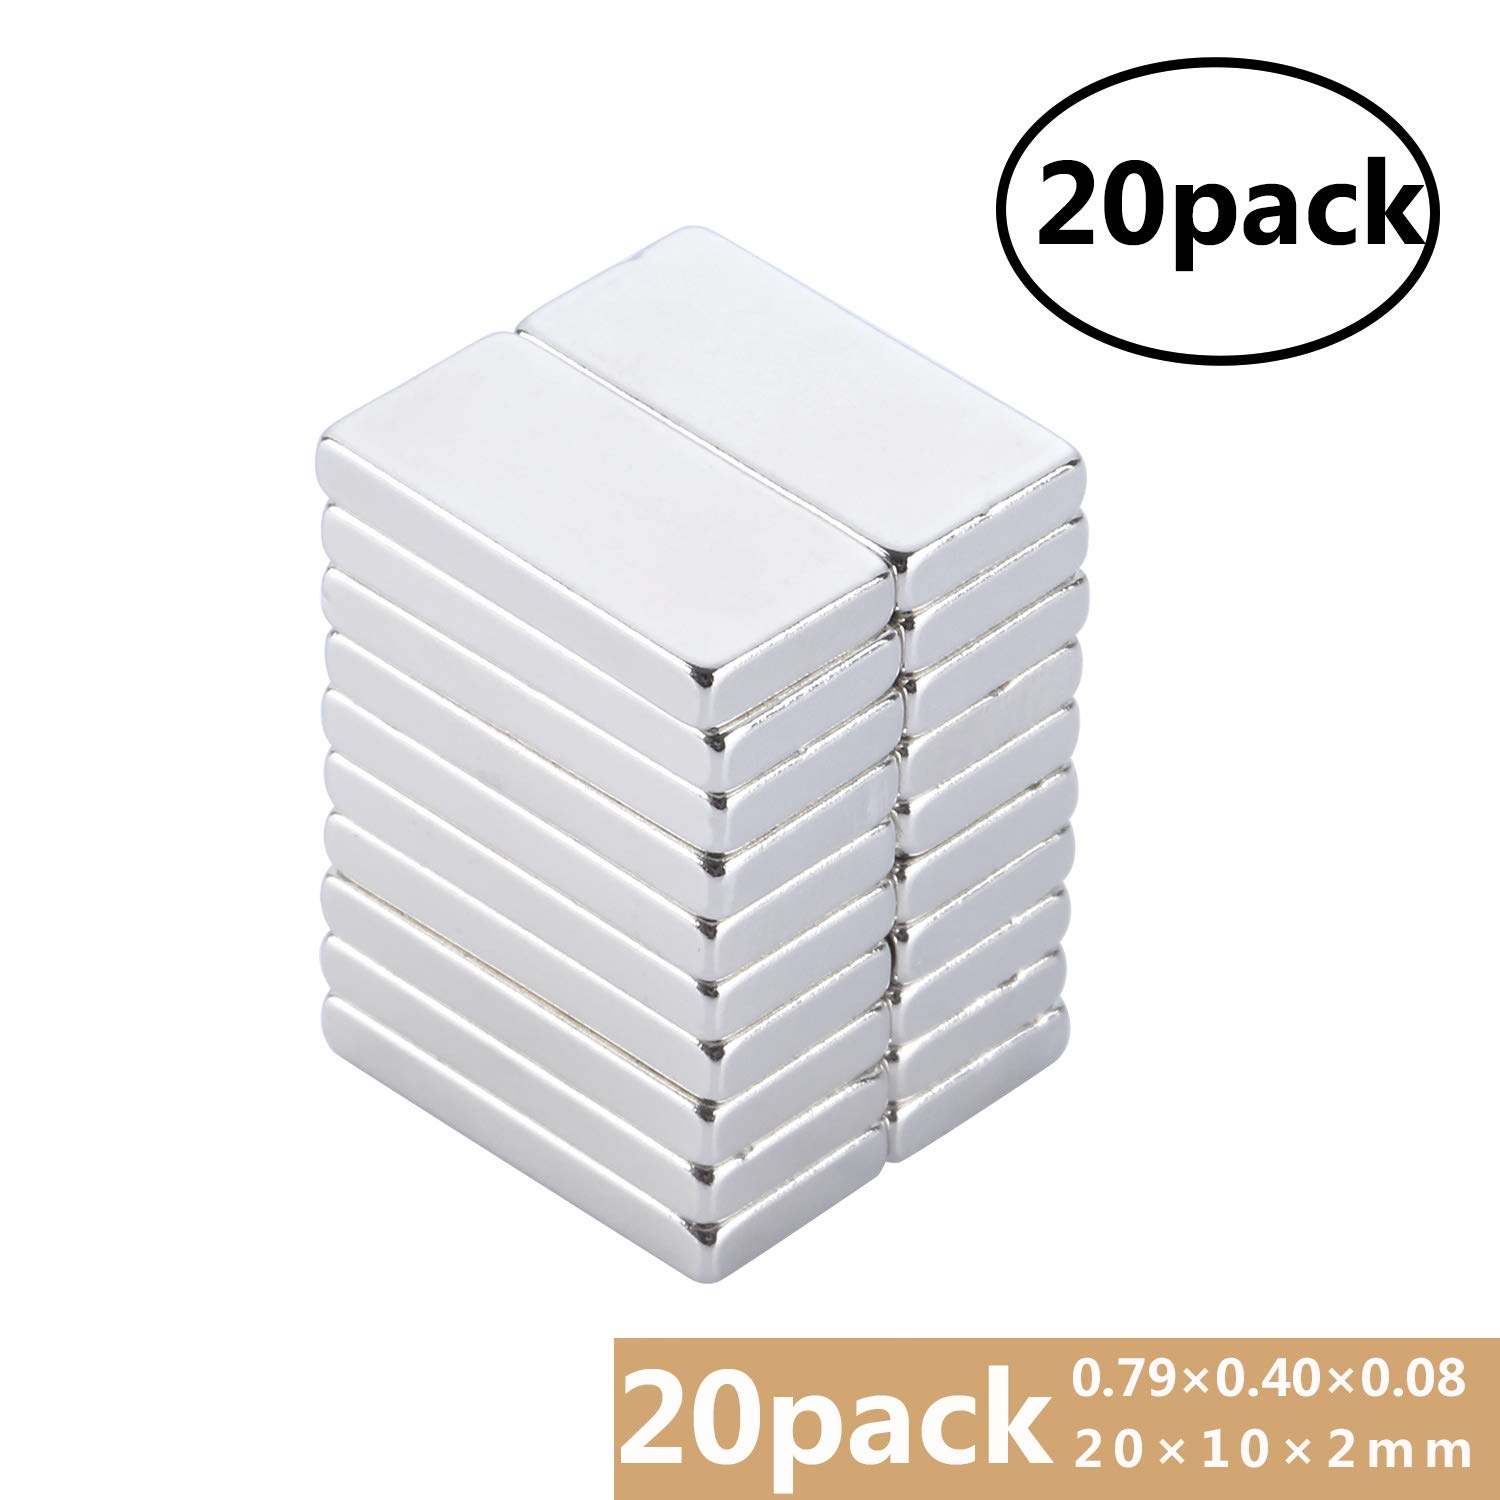 Hobbies Home and Office Yizhet 50 Pcs Neodymium Strong Magnets Cylinder Neodymium Magnet 8mm dia x 1mm thick for Arts Crafts